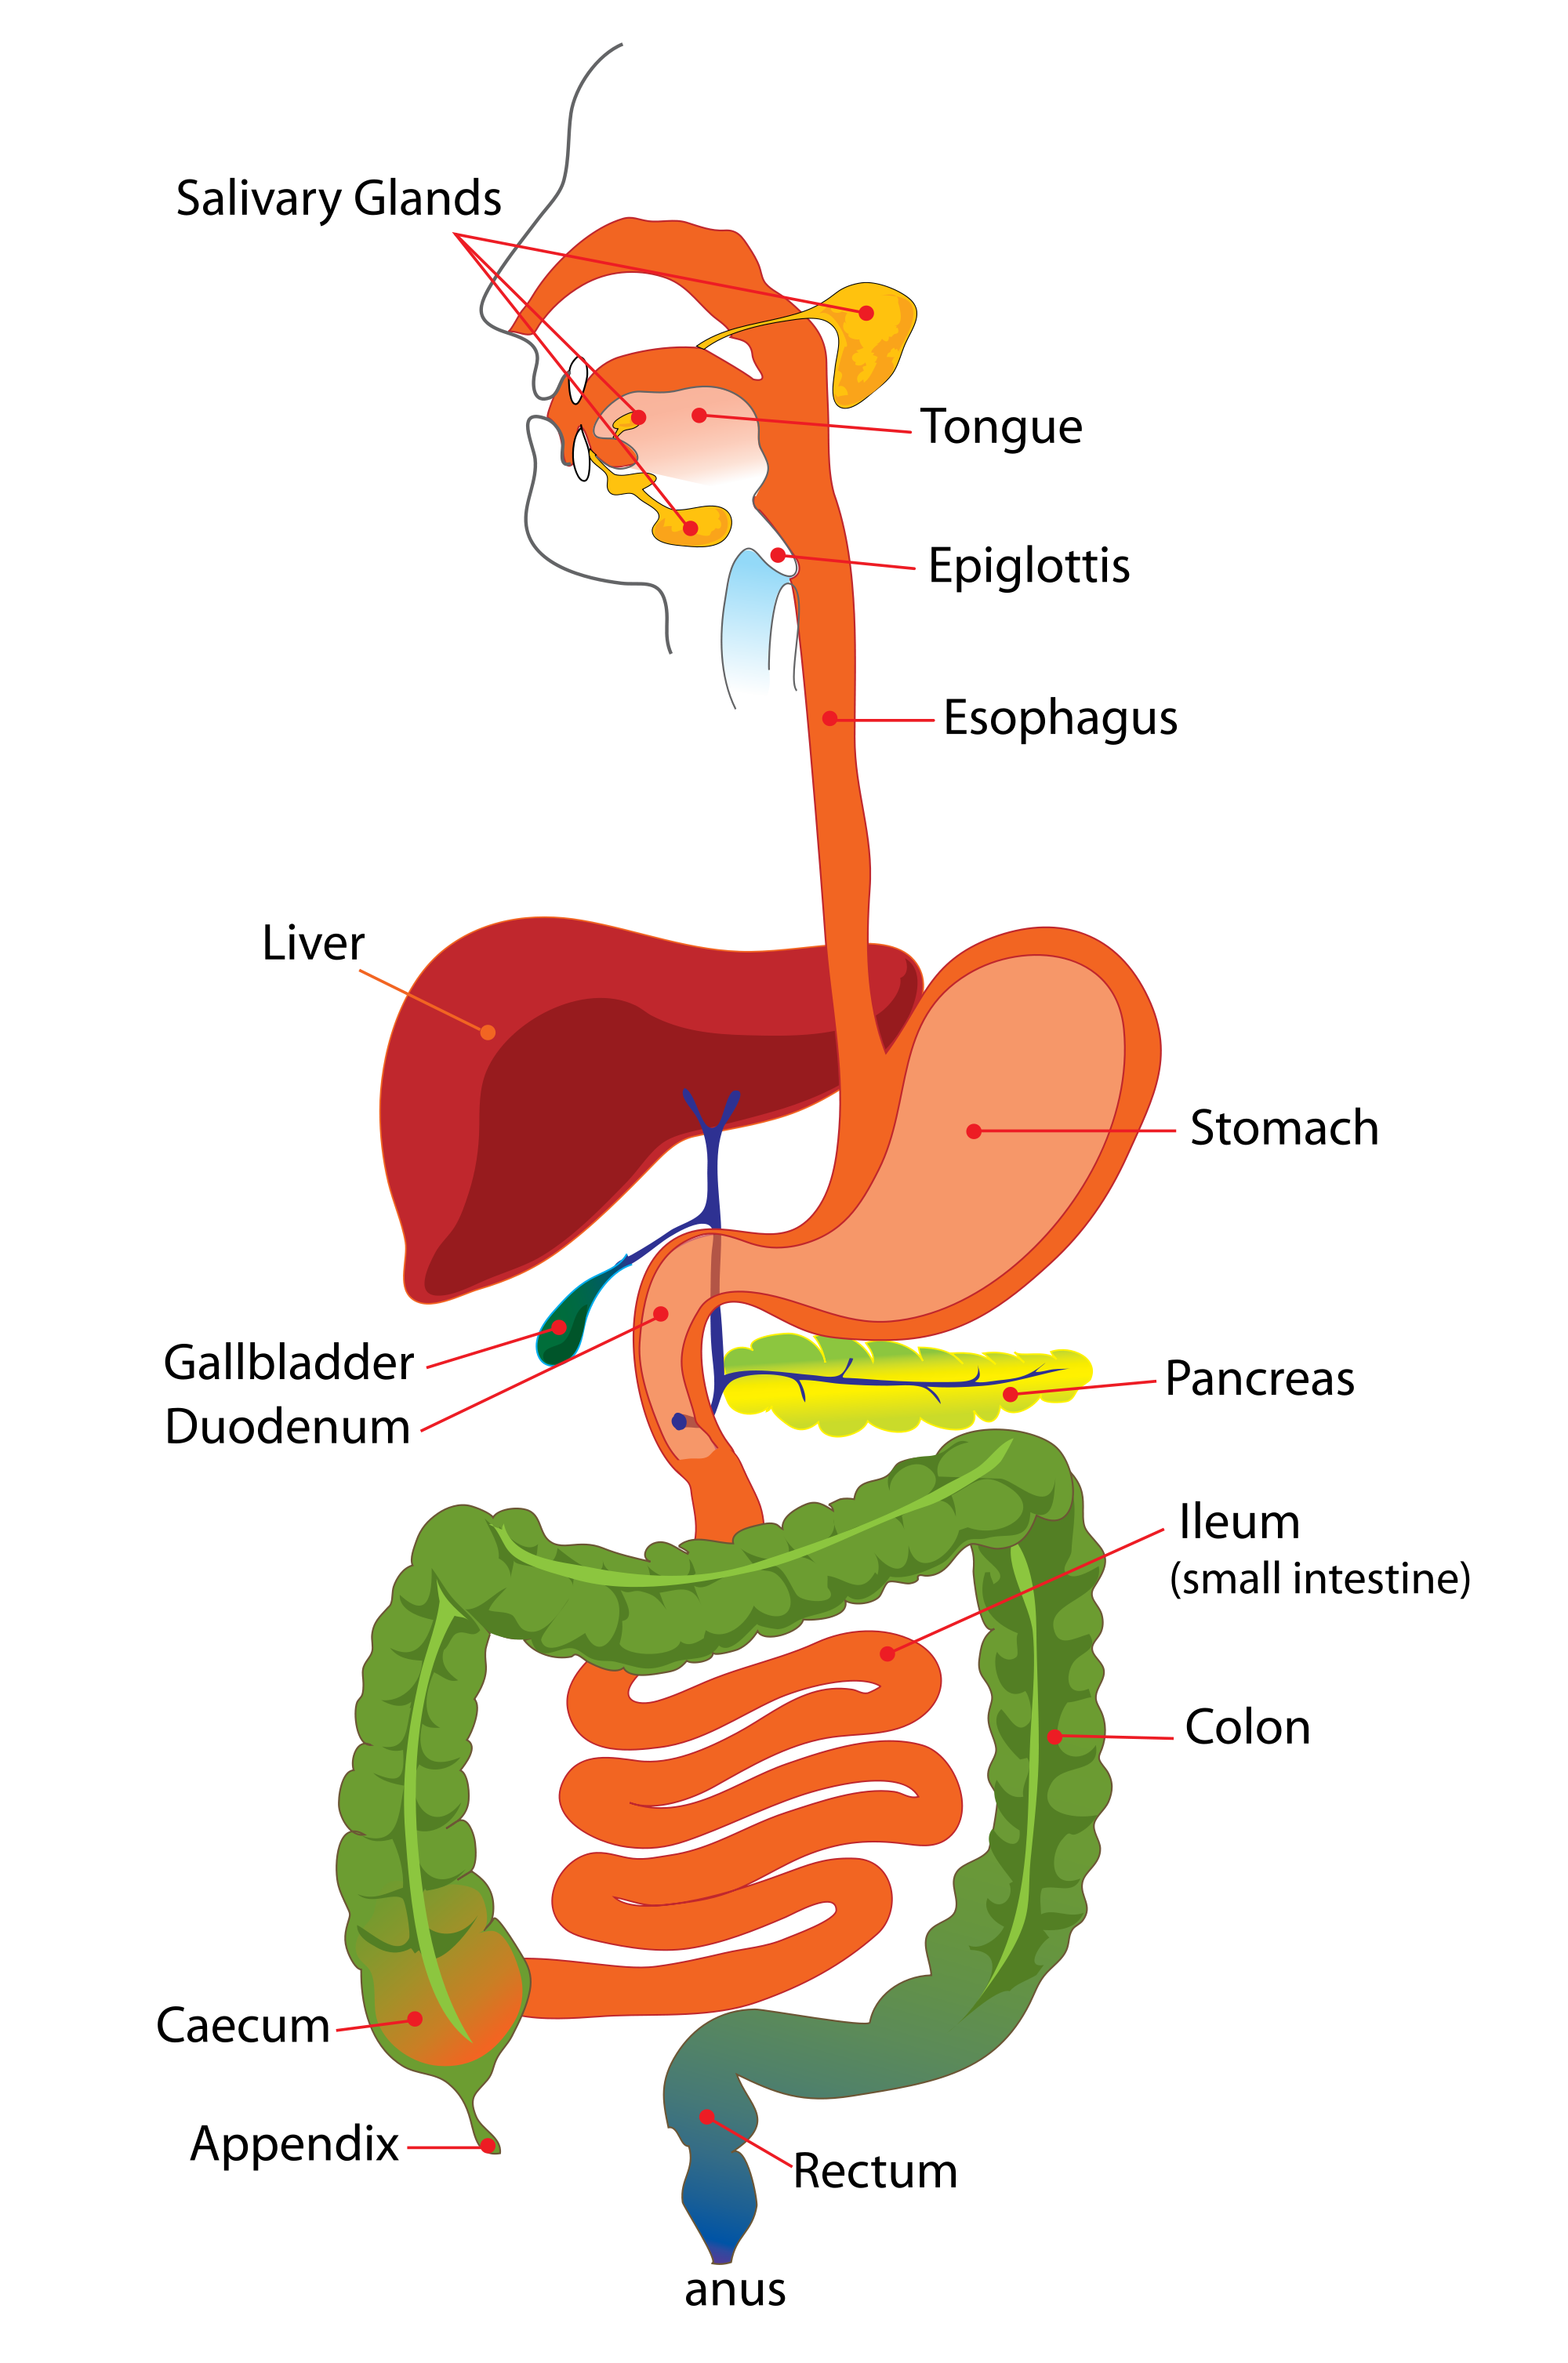 Digestive System Diagram For Kids Amp Digestion Facts